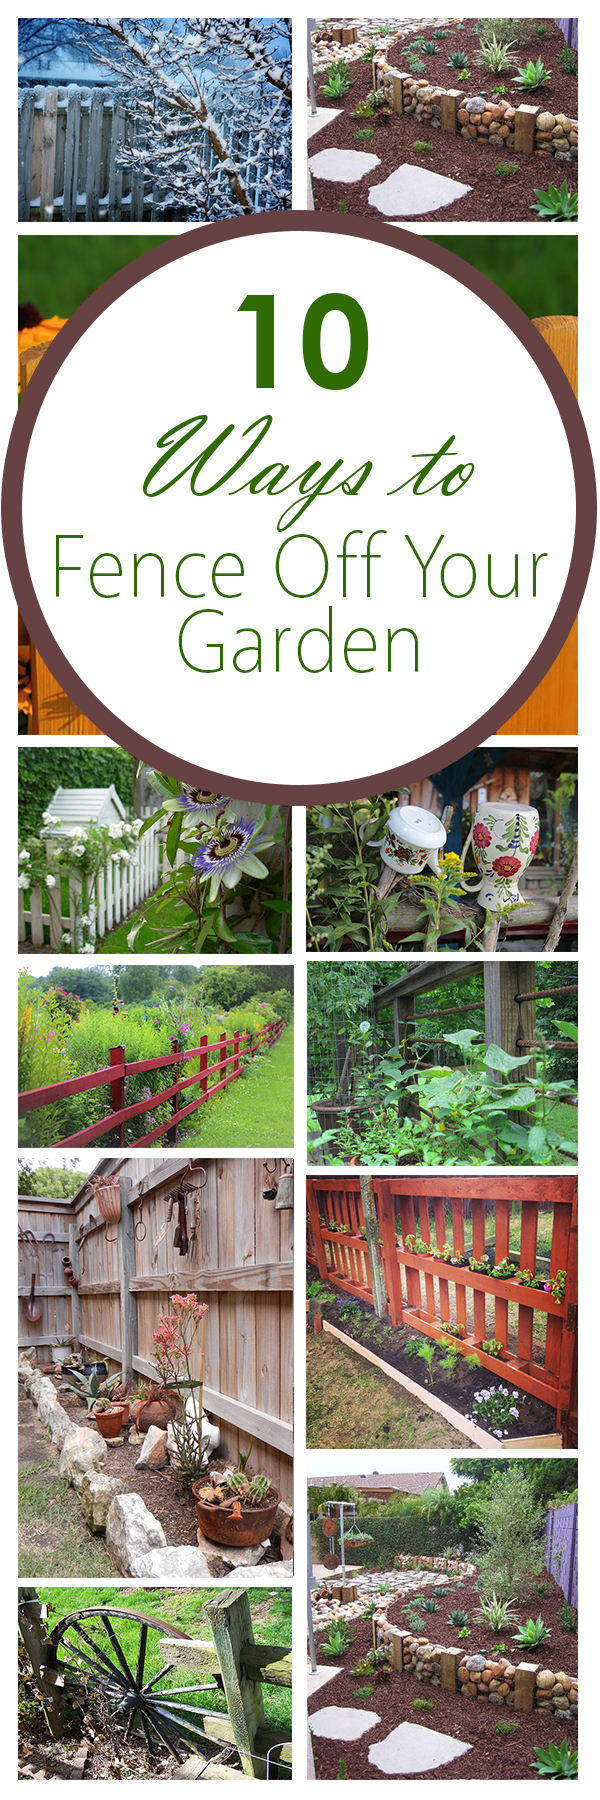 10 Ways to Fence Off Your Garden